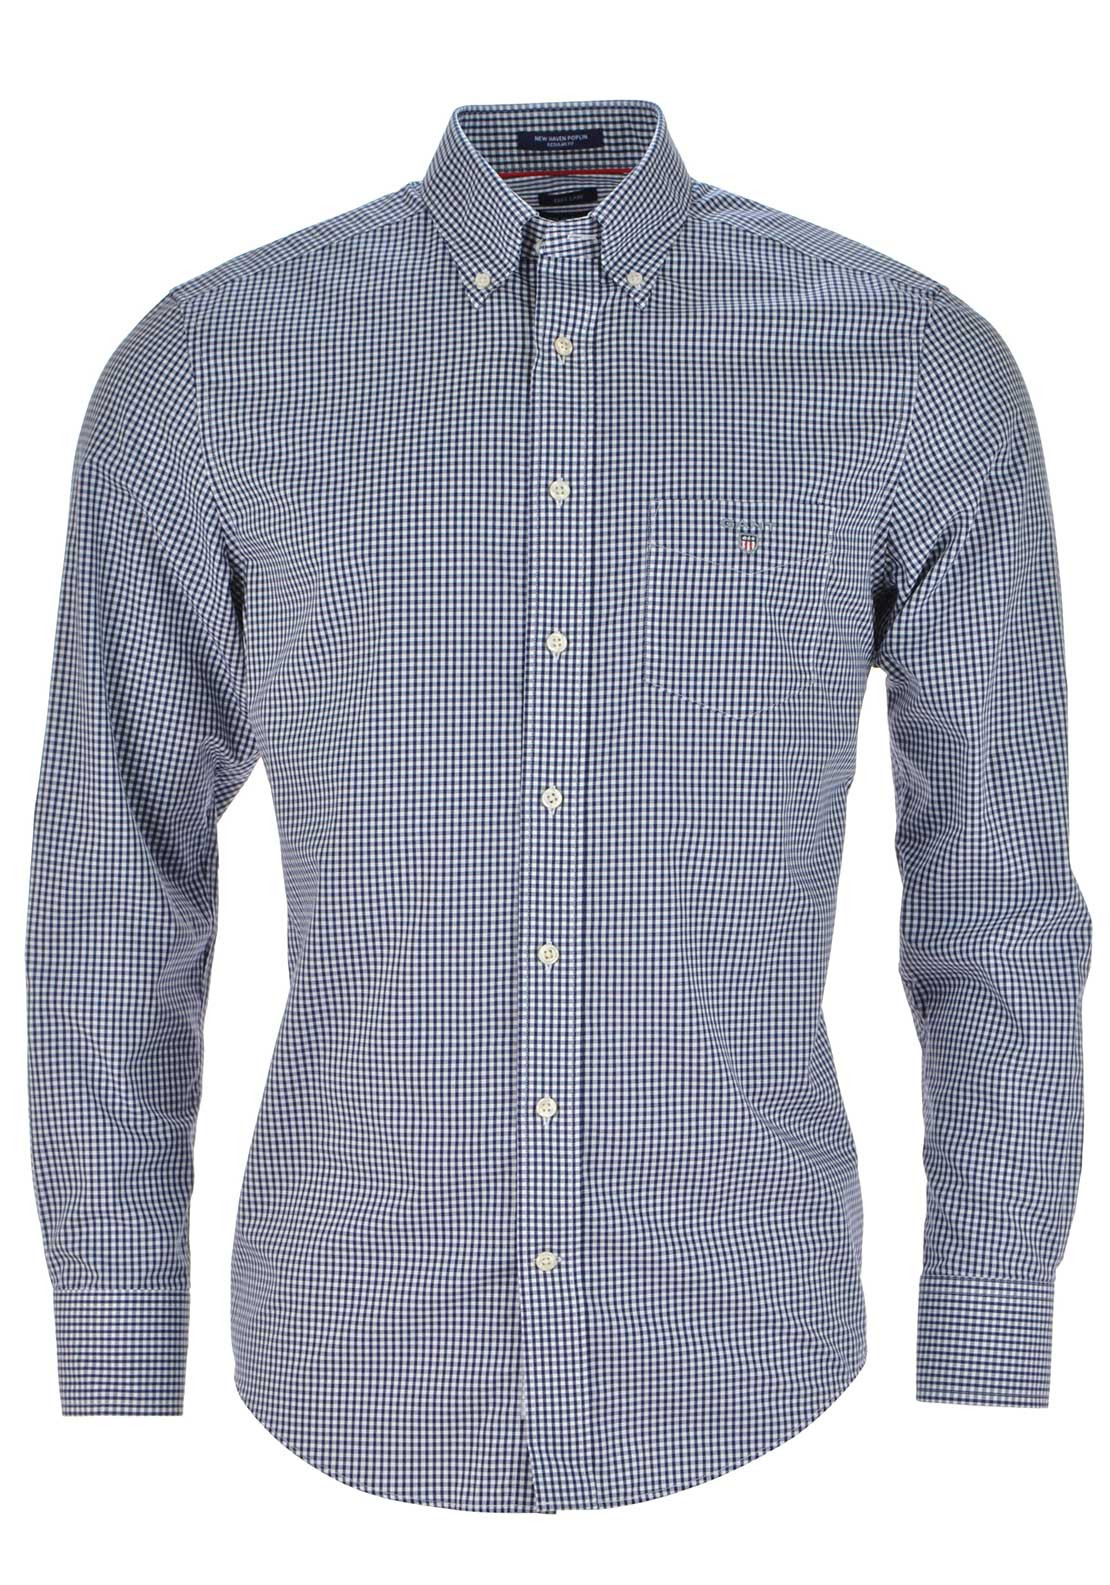 Gant Mens Small Gingham Poplin Check Shirt, Persian Blue